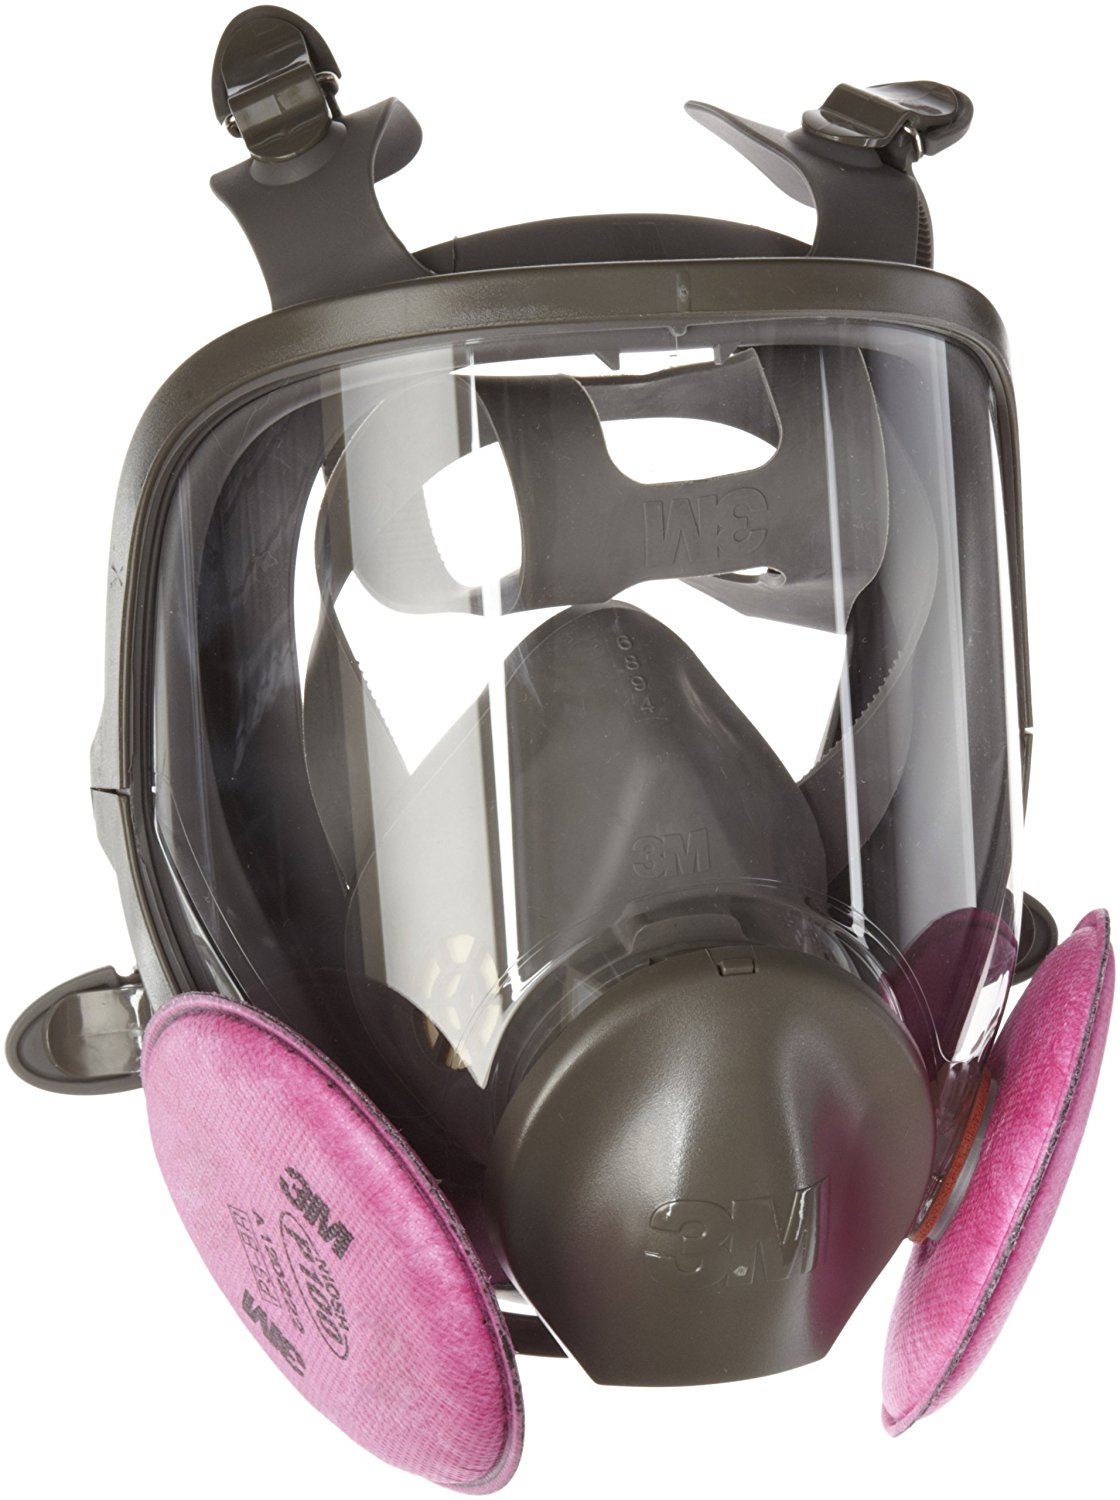 3m face mask filters